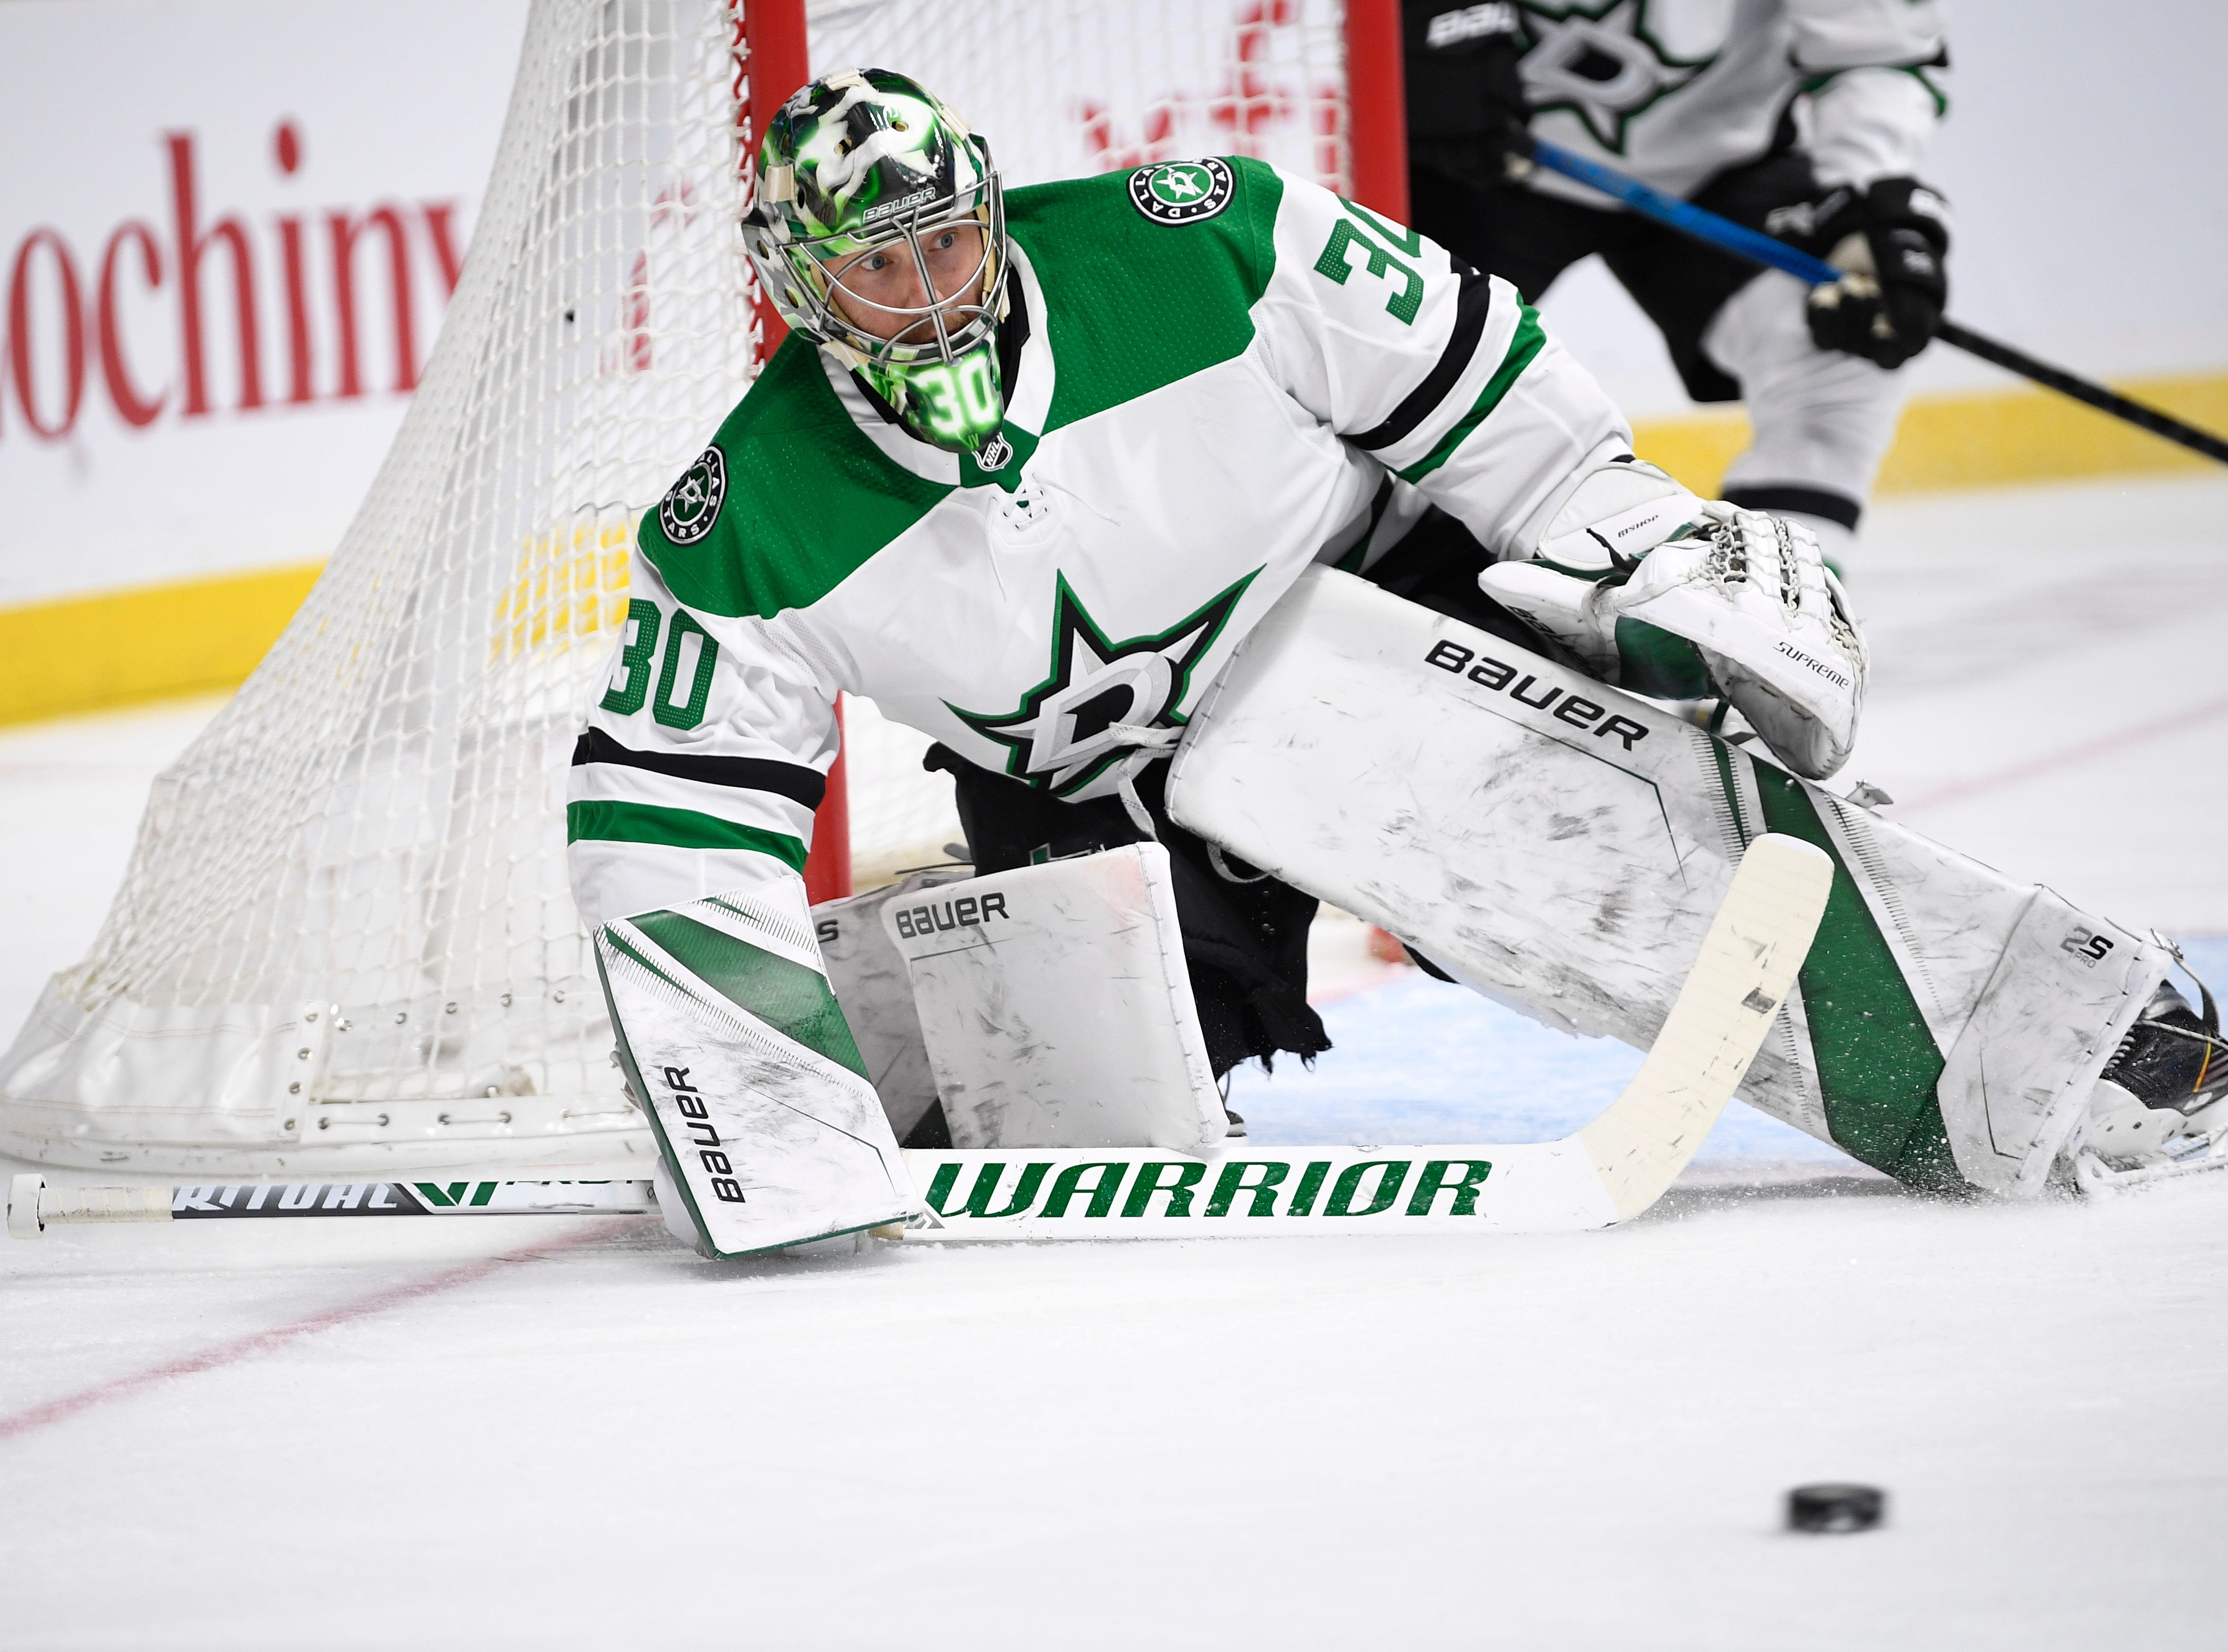 Dallas Stars goaltender Ben Bishop (30) keeps an eye on the puck during the first period of the divisional semifinal game against the Nashville Predators at Bridgestone Arena in Nashville, Tenn., Wednesday, April 10, 2019.